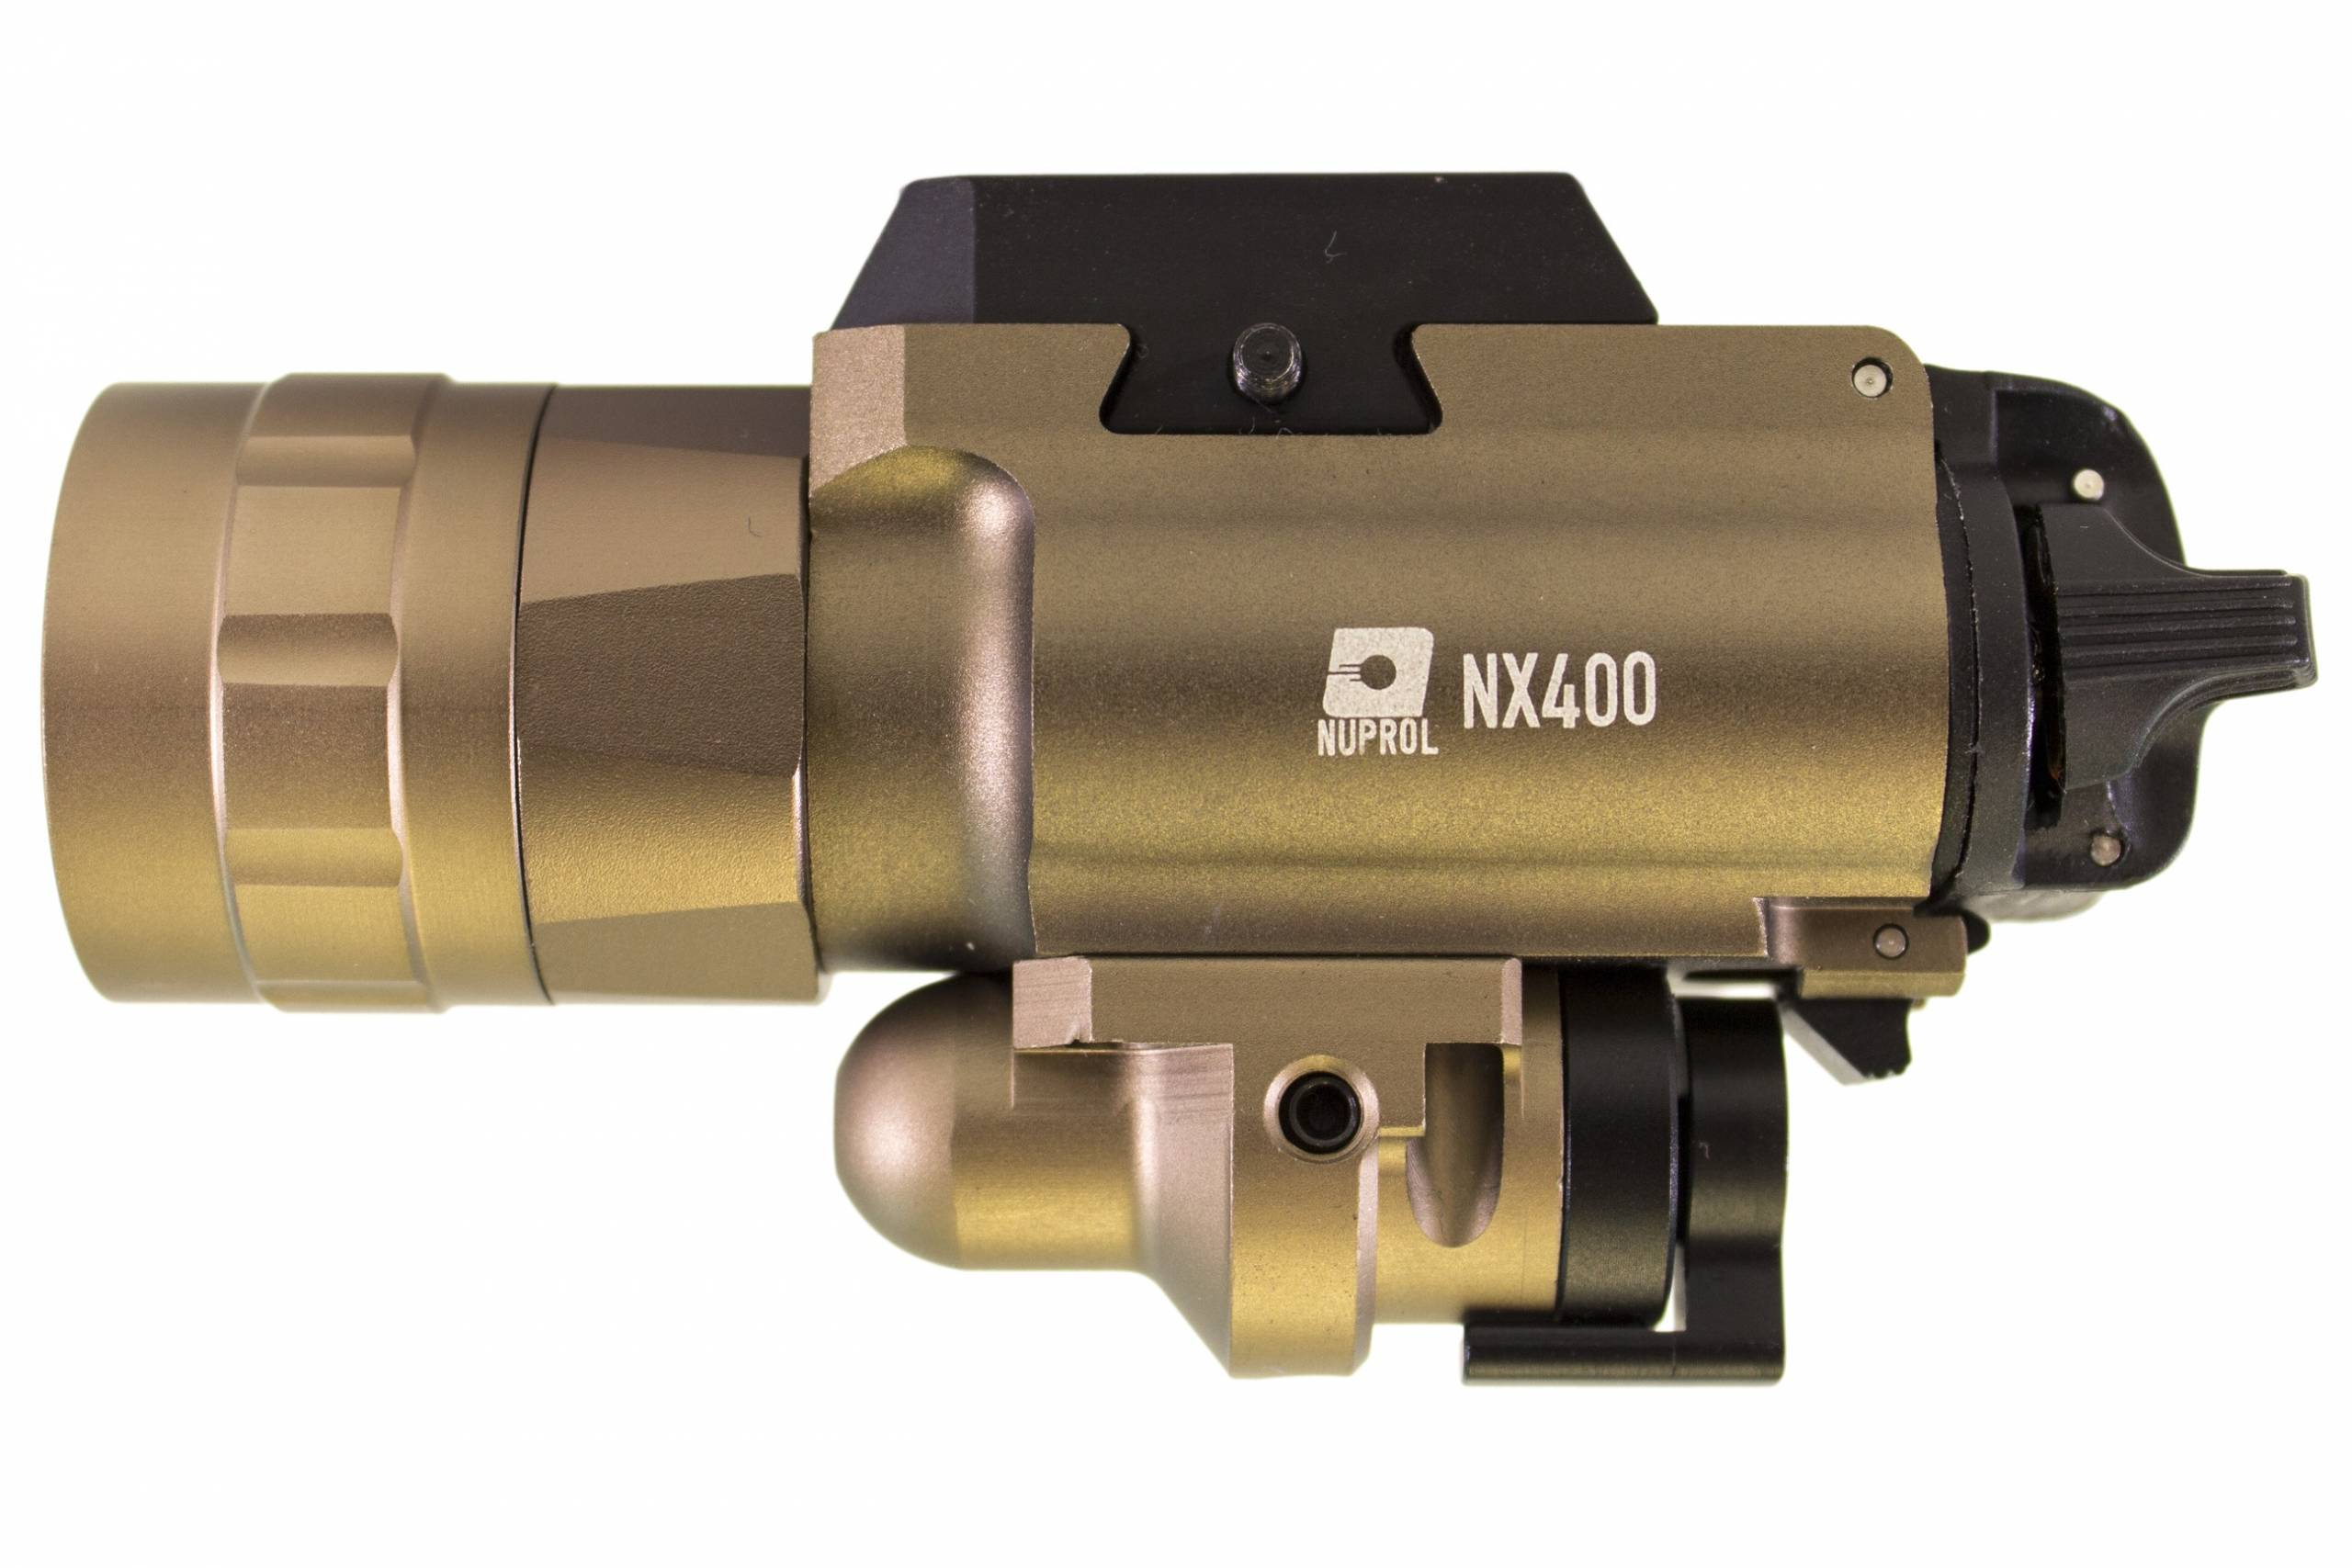 Nuprol NX400 Pistol Torch and Laser – Tan product image